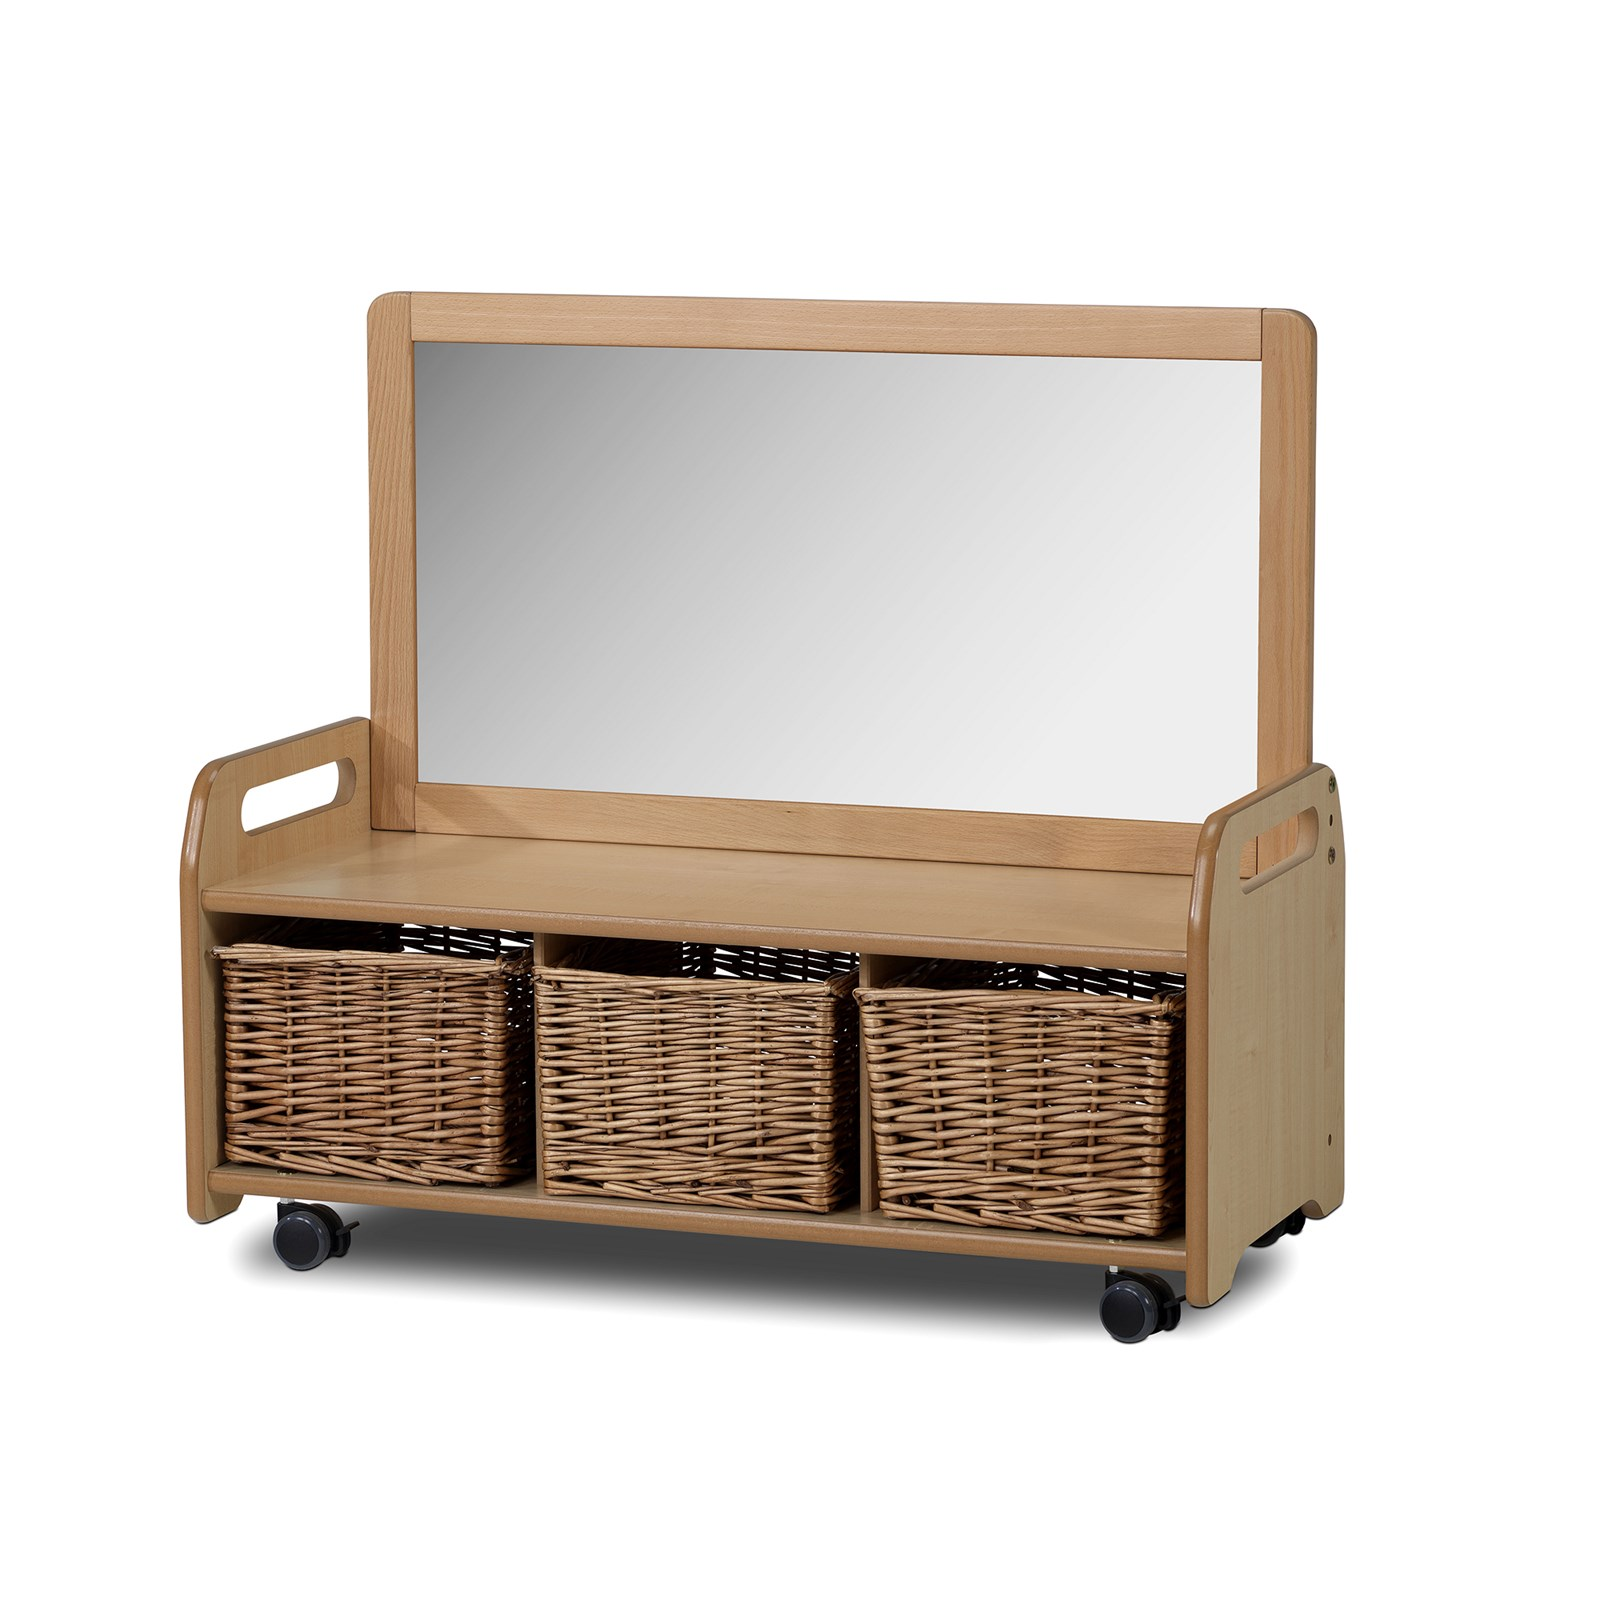 Playscapes Mobile Mirror Unit - Wicker Baskets